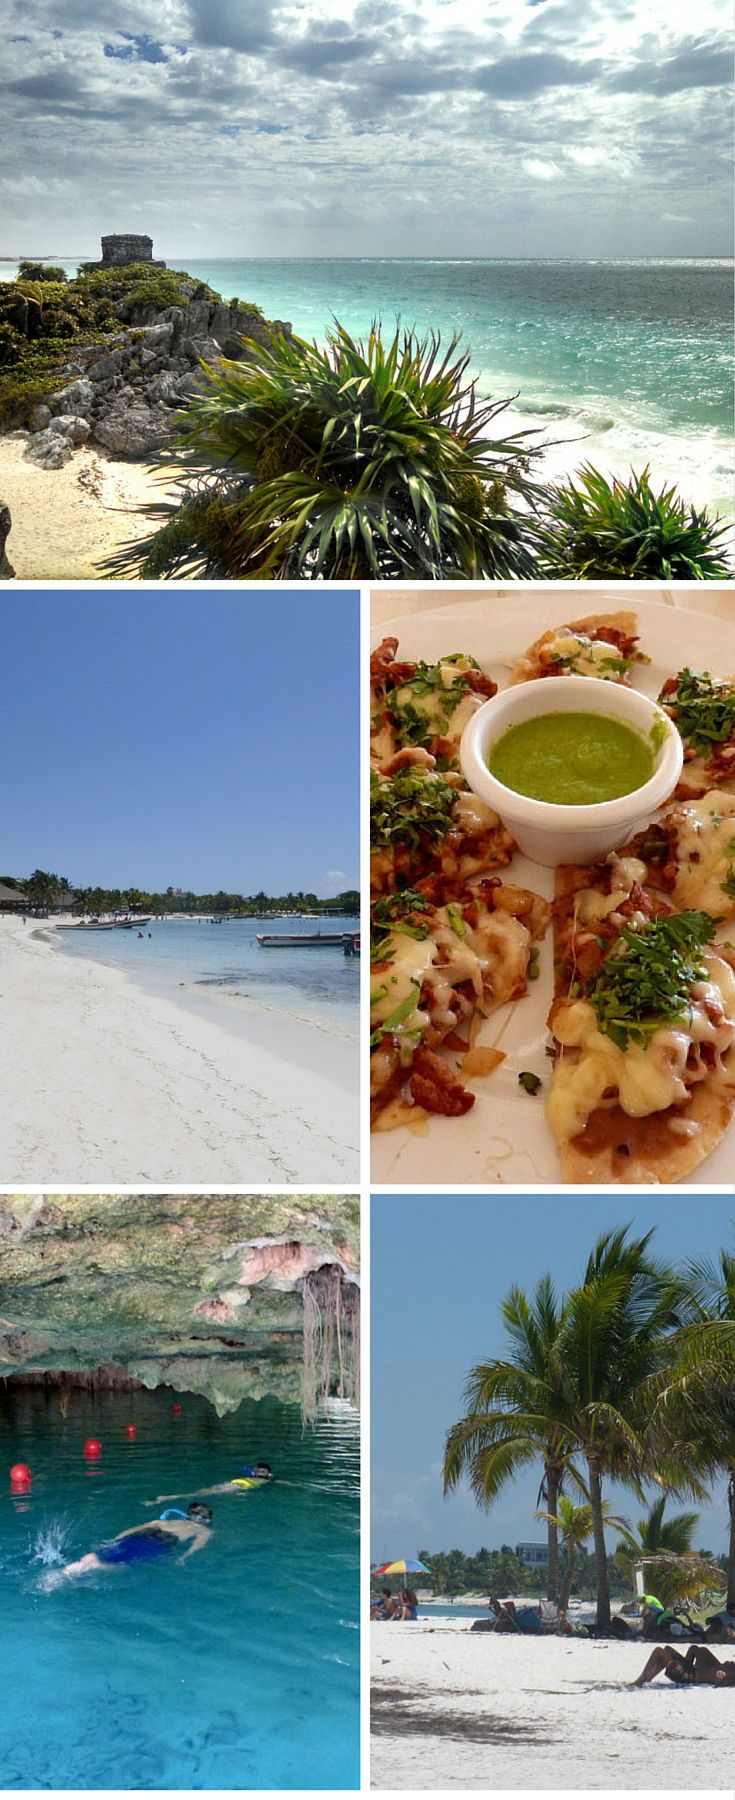 Playa Del Carmen Mexico Side Trips. White sandy beaches, turquoise water, Tulum ruins, the turtles of Akumal and amazing food all await you on a day trip from Playa Del Carmen. Get the most out of your Mexico Vacation. @venturists